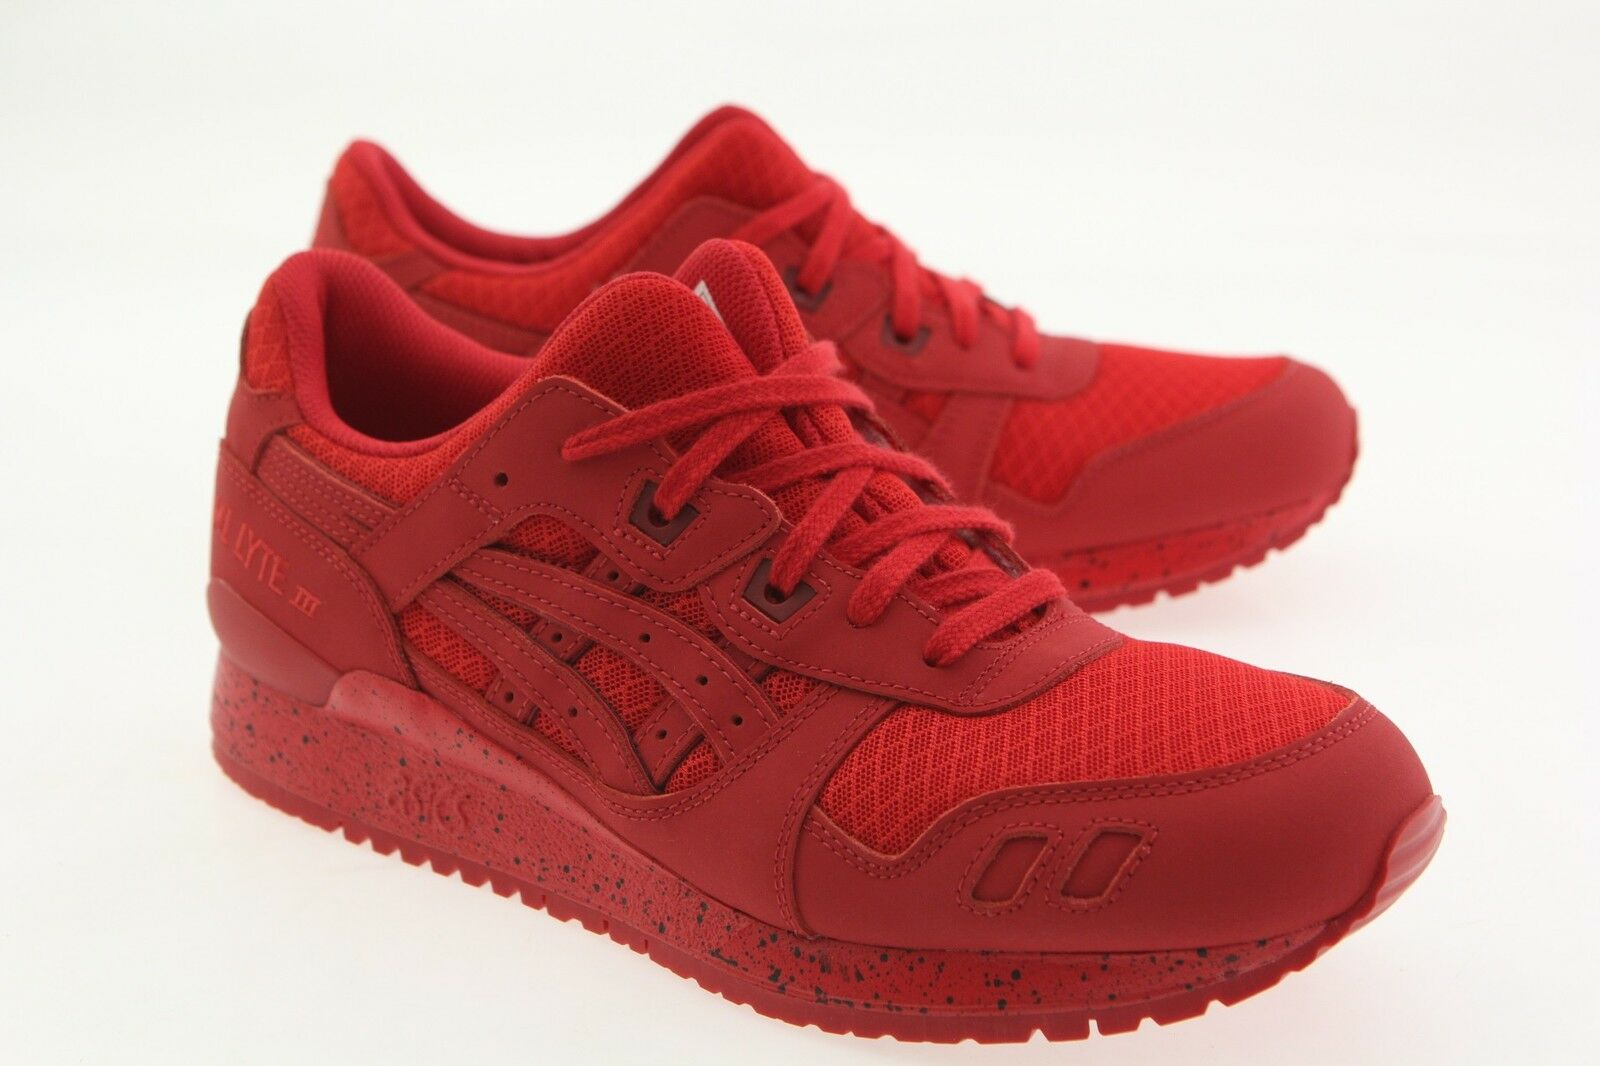 70153a58b7df Asics Tiger Men Gel-Lyte III - Mono Pack red red red H6X3L-2525 ...